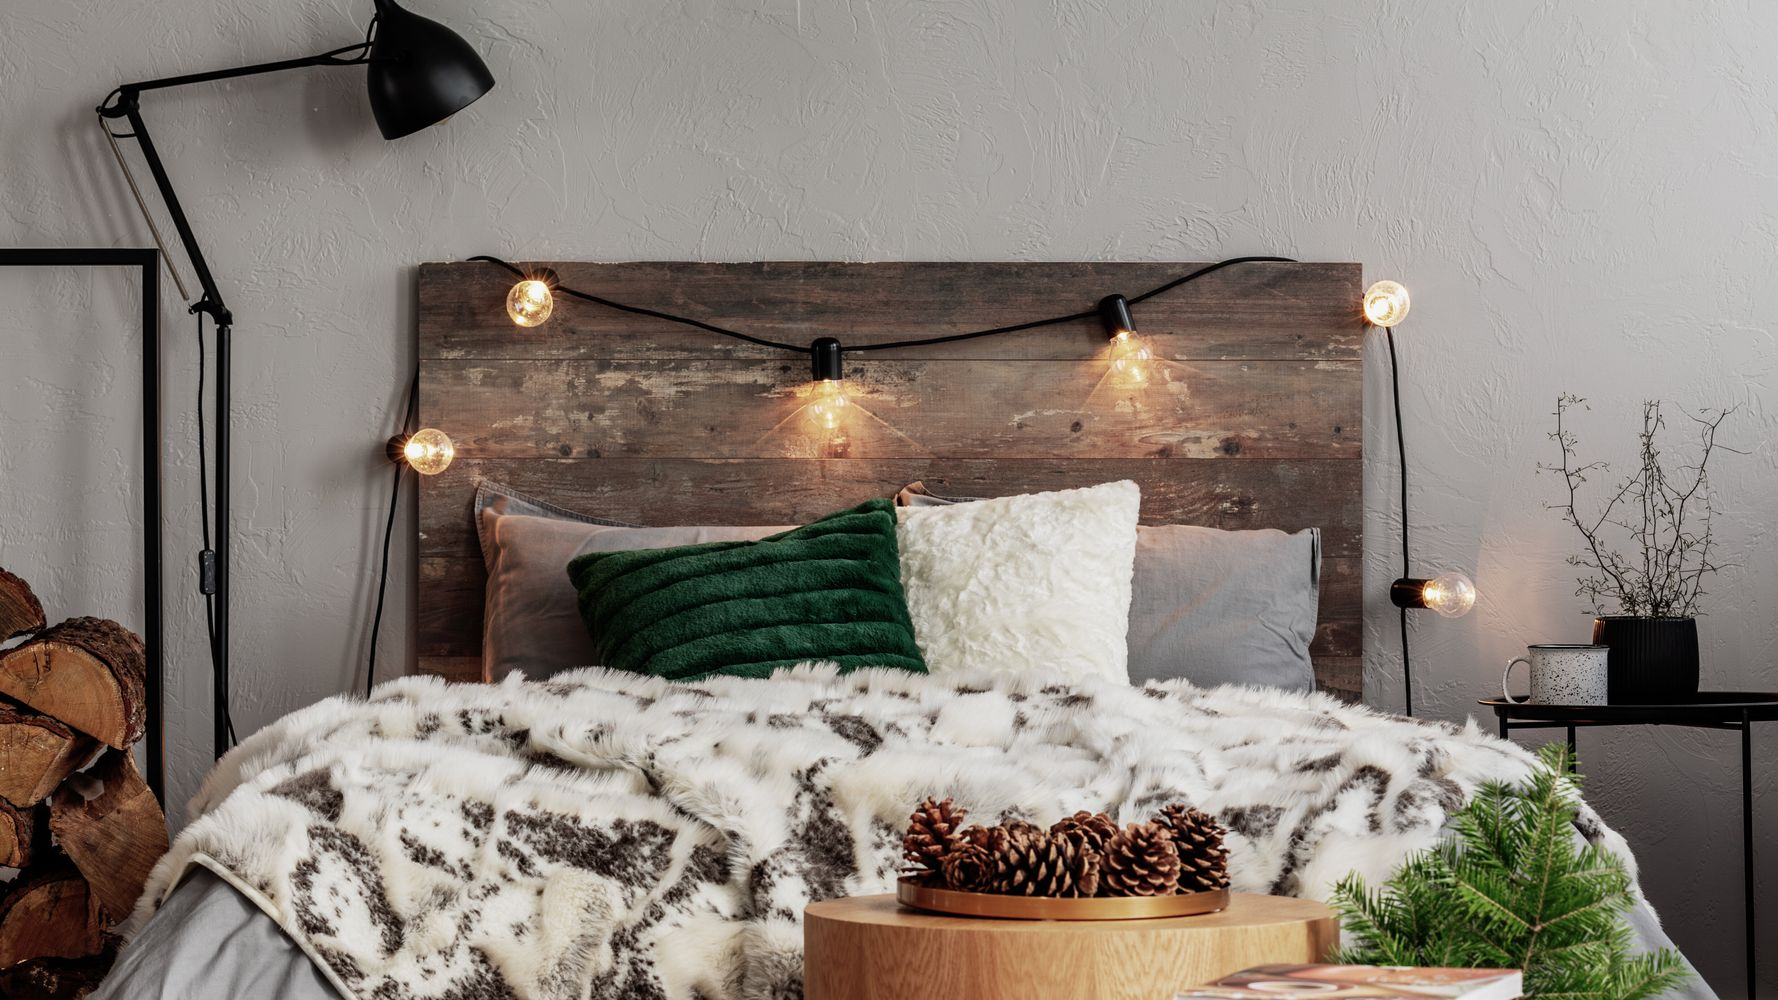 Stylish Holiday Decor That Can Stay Up All Year Long